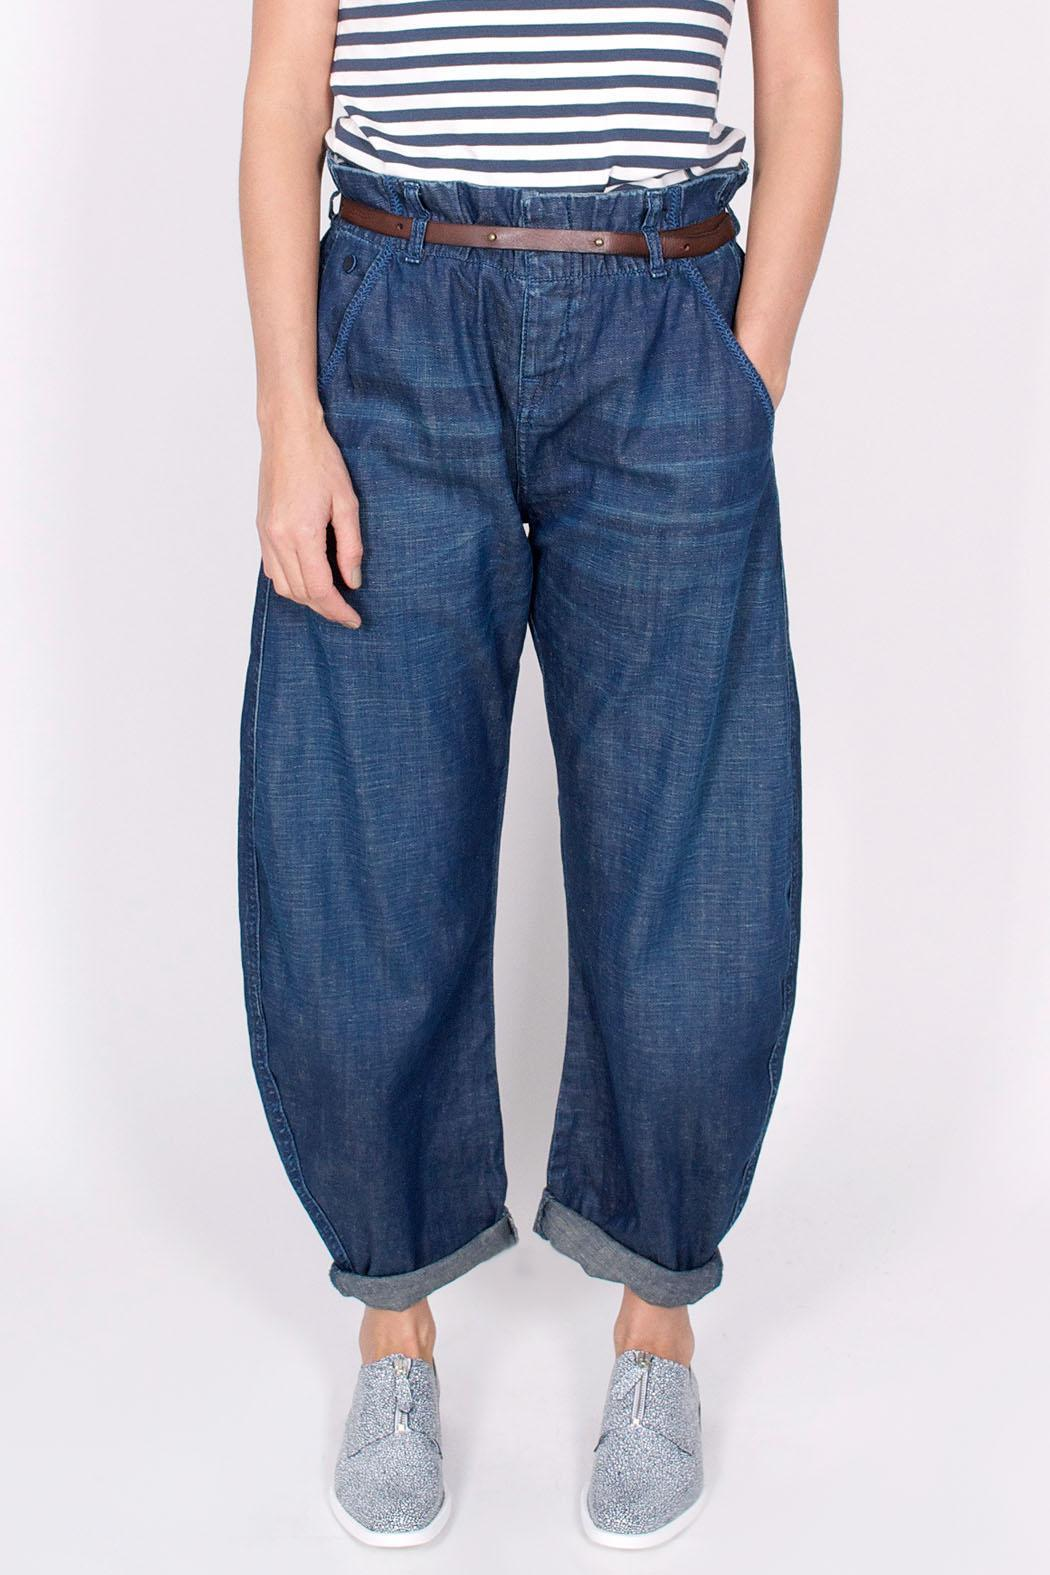 Maison Scotch Bananita Jeans - Front Cropped Image